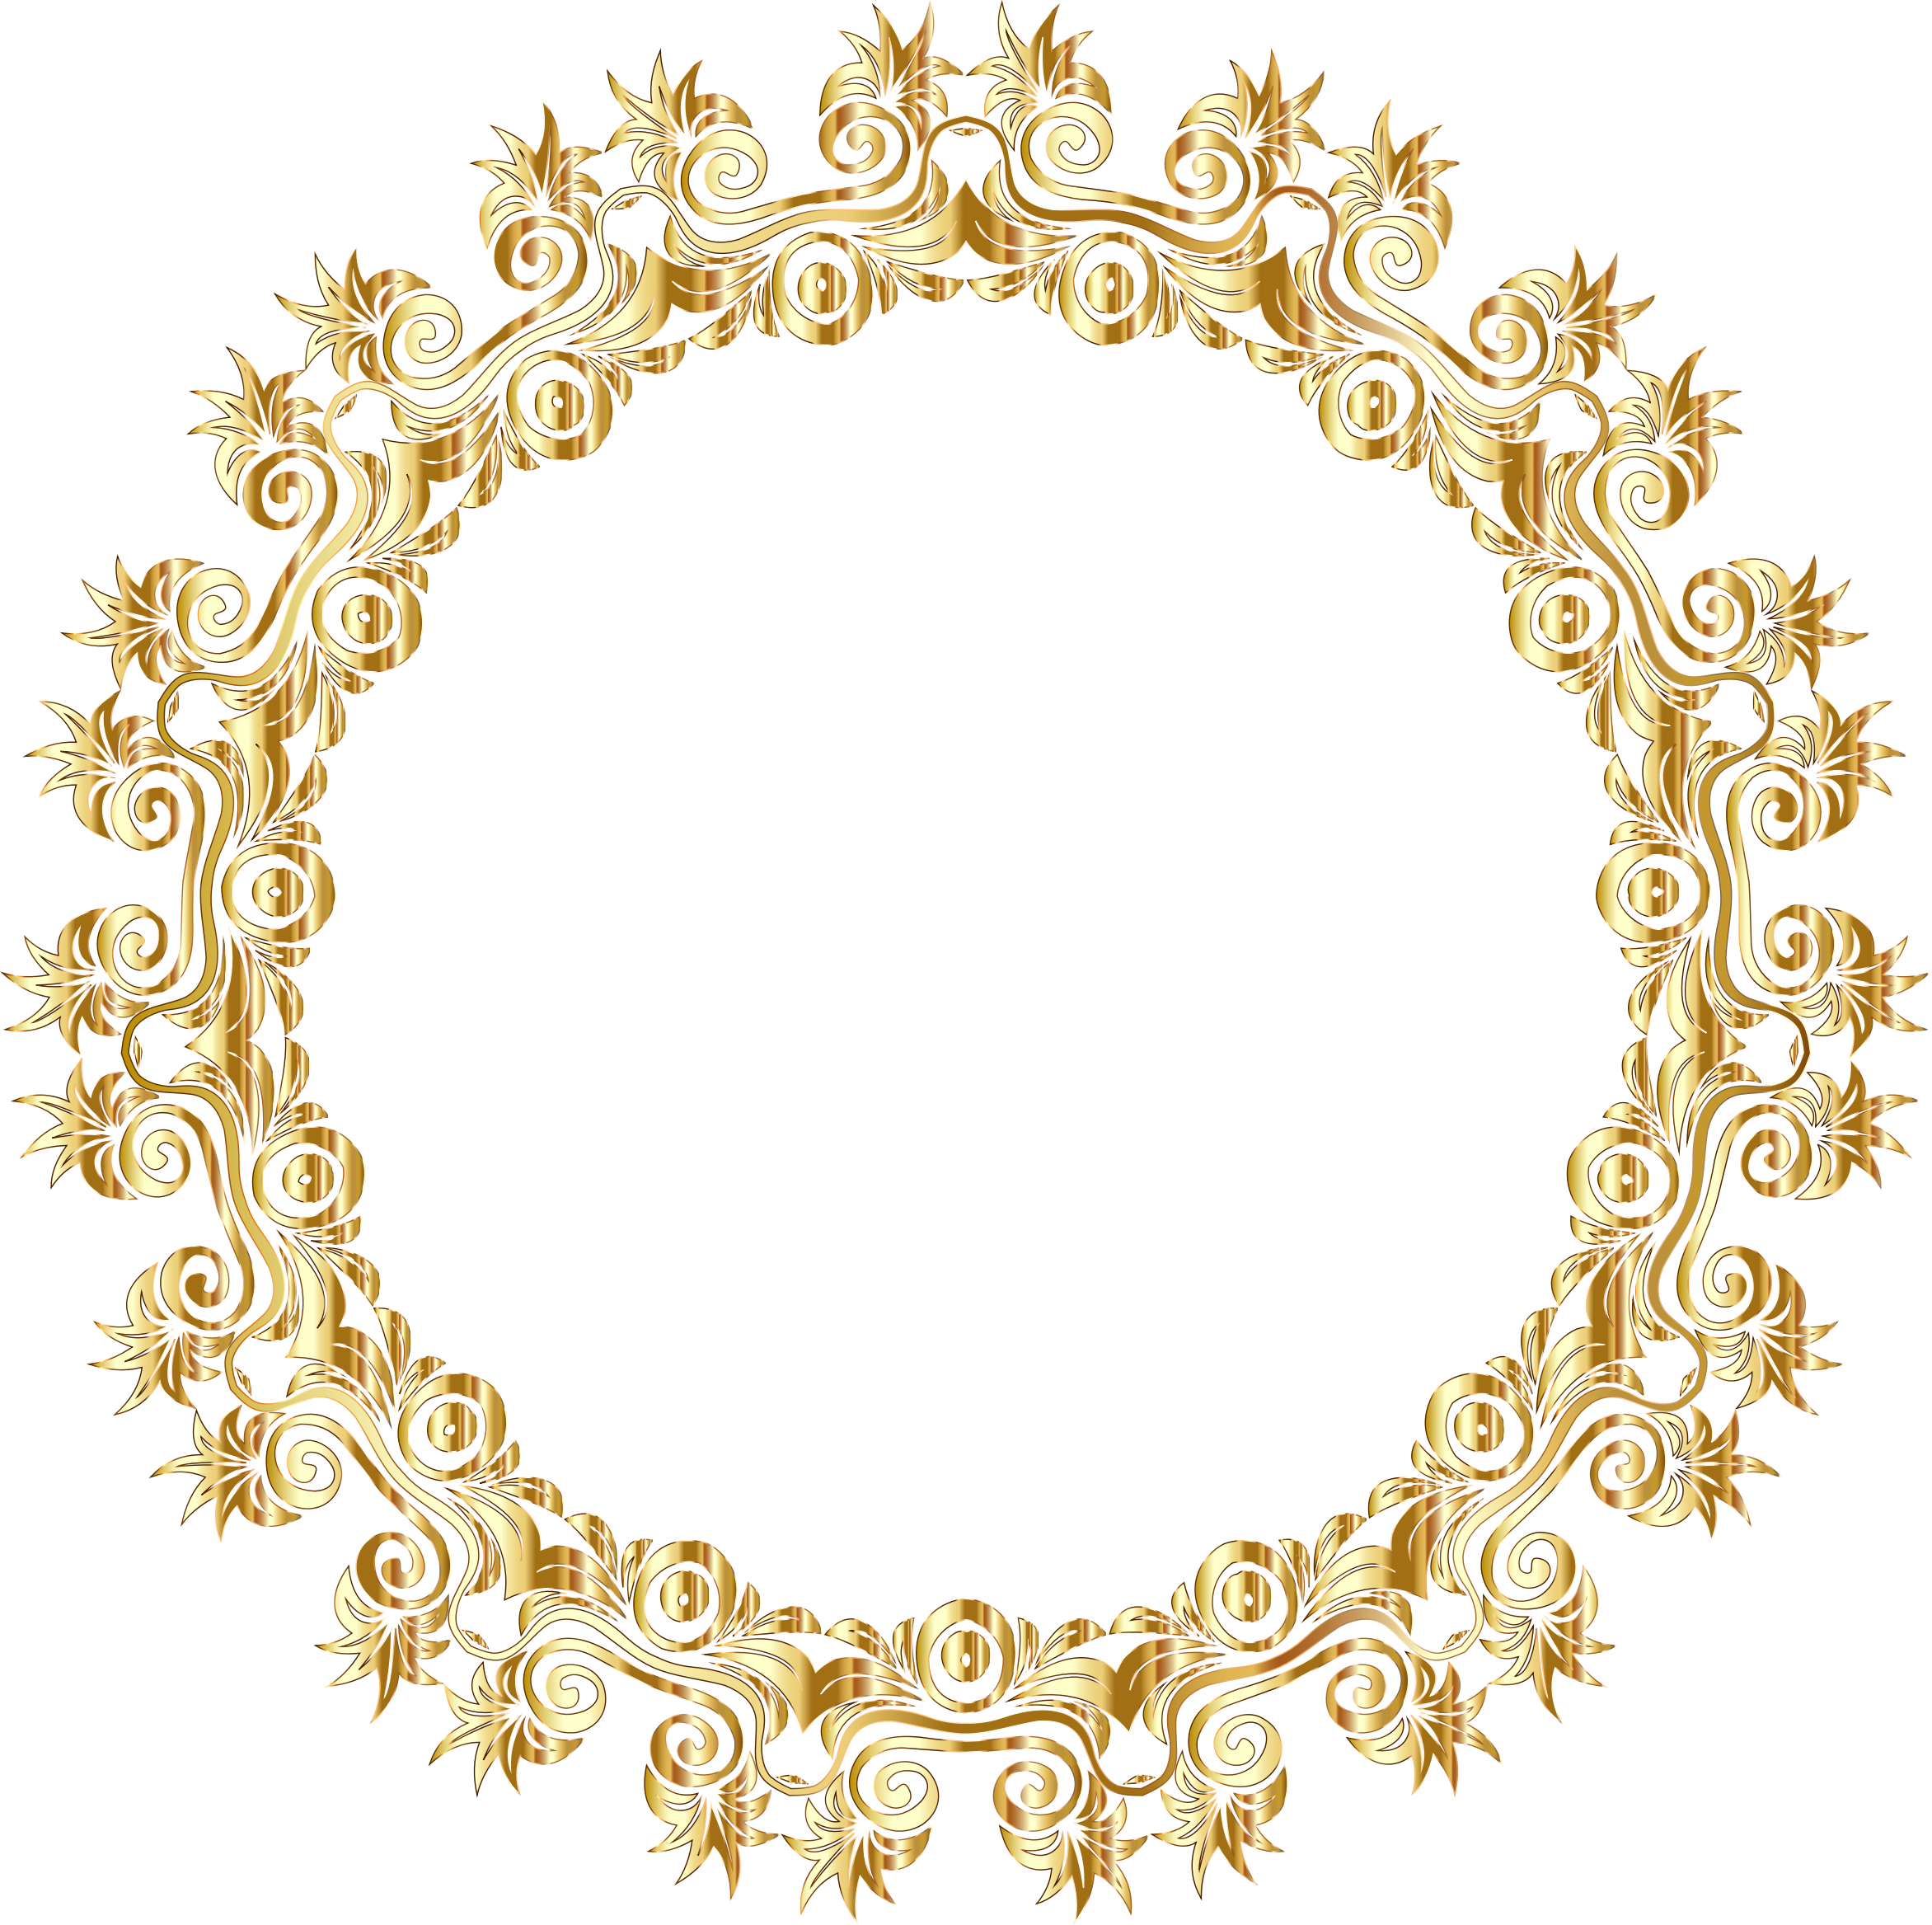 Gold Floral Flourish Motif Frame No Background by GDJ